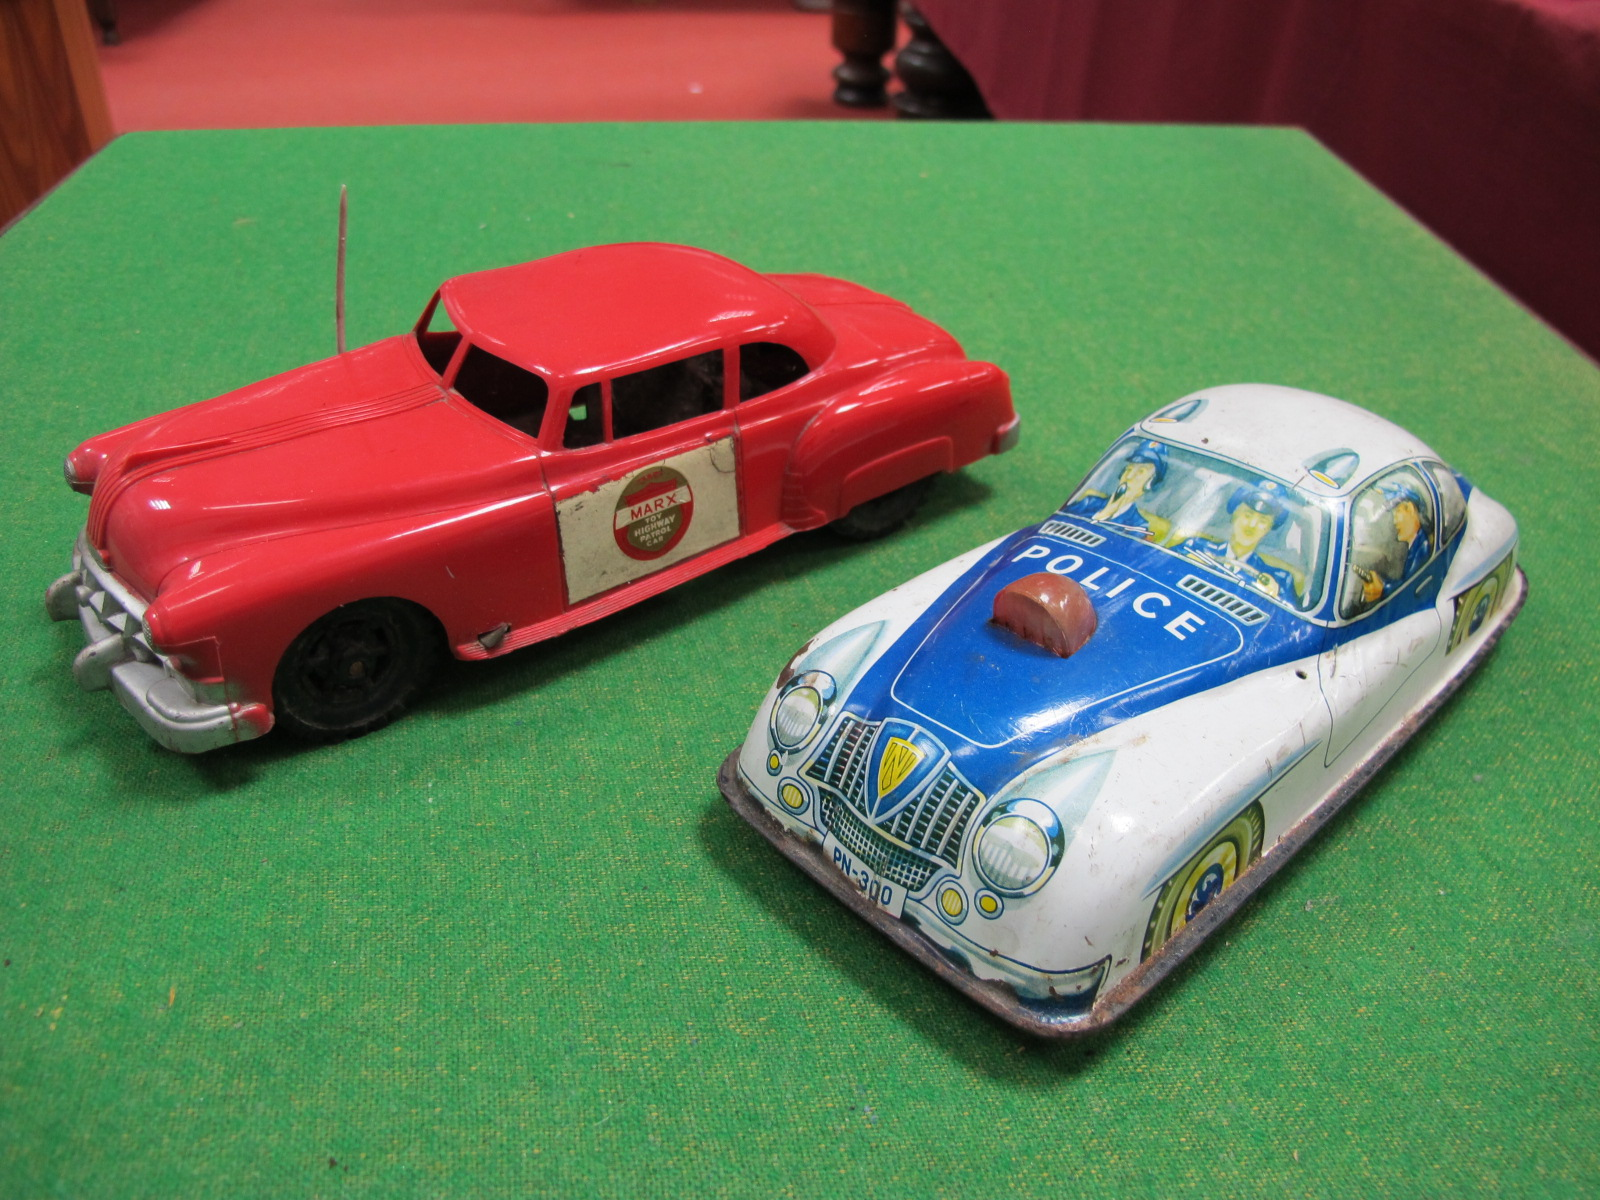 Lot 543 - A 1950's Plastic Police Car, by Marx, friction drive, red plastic, 24cm long, plus a tinplate police